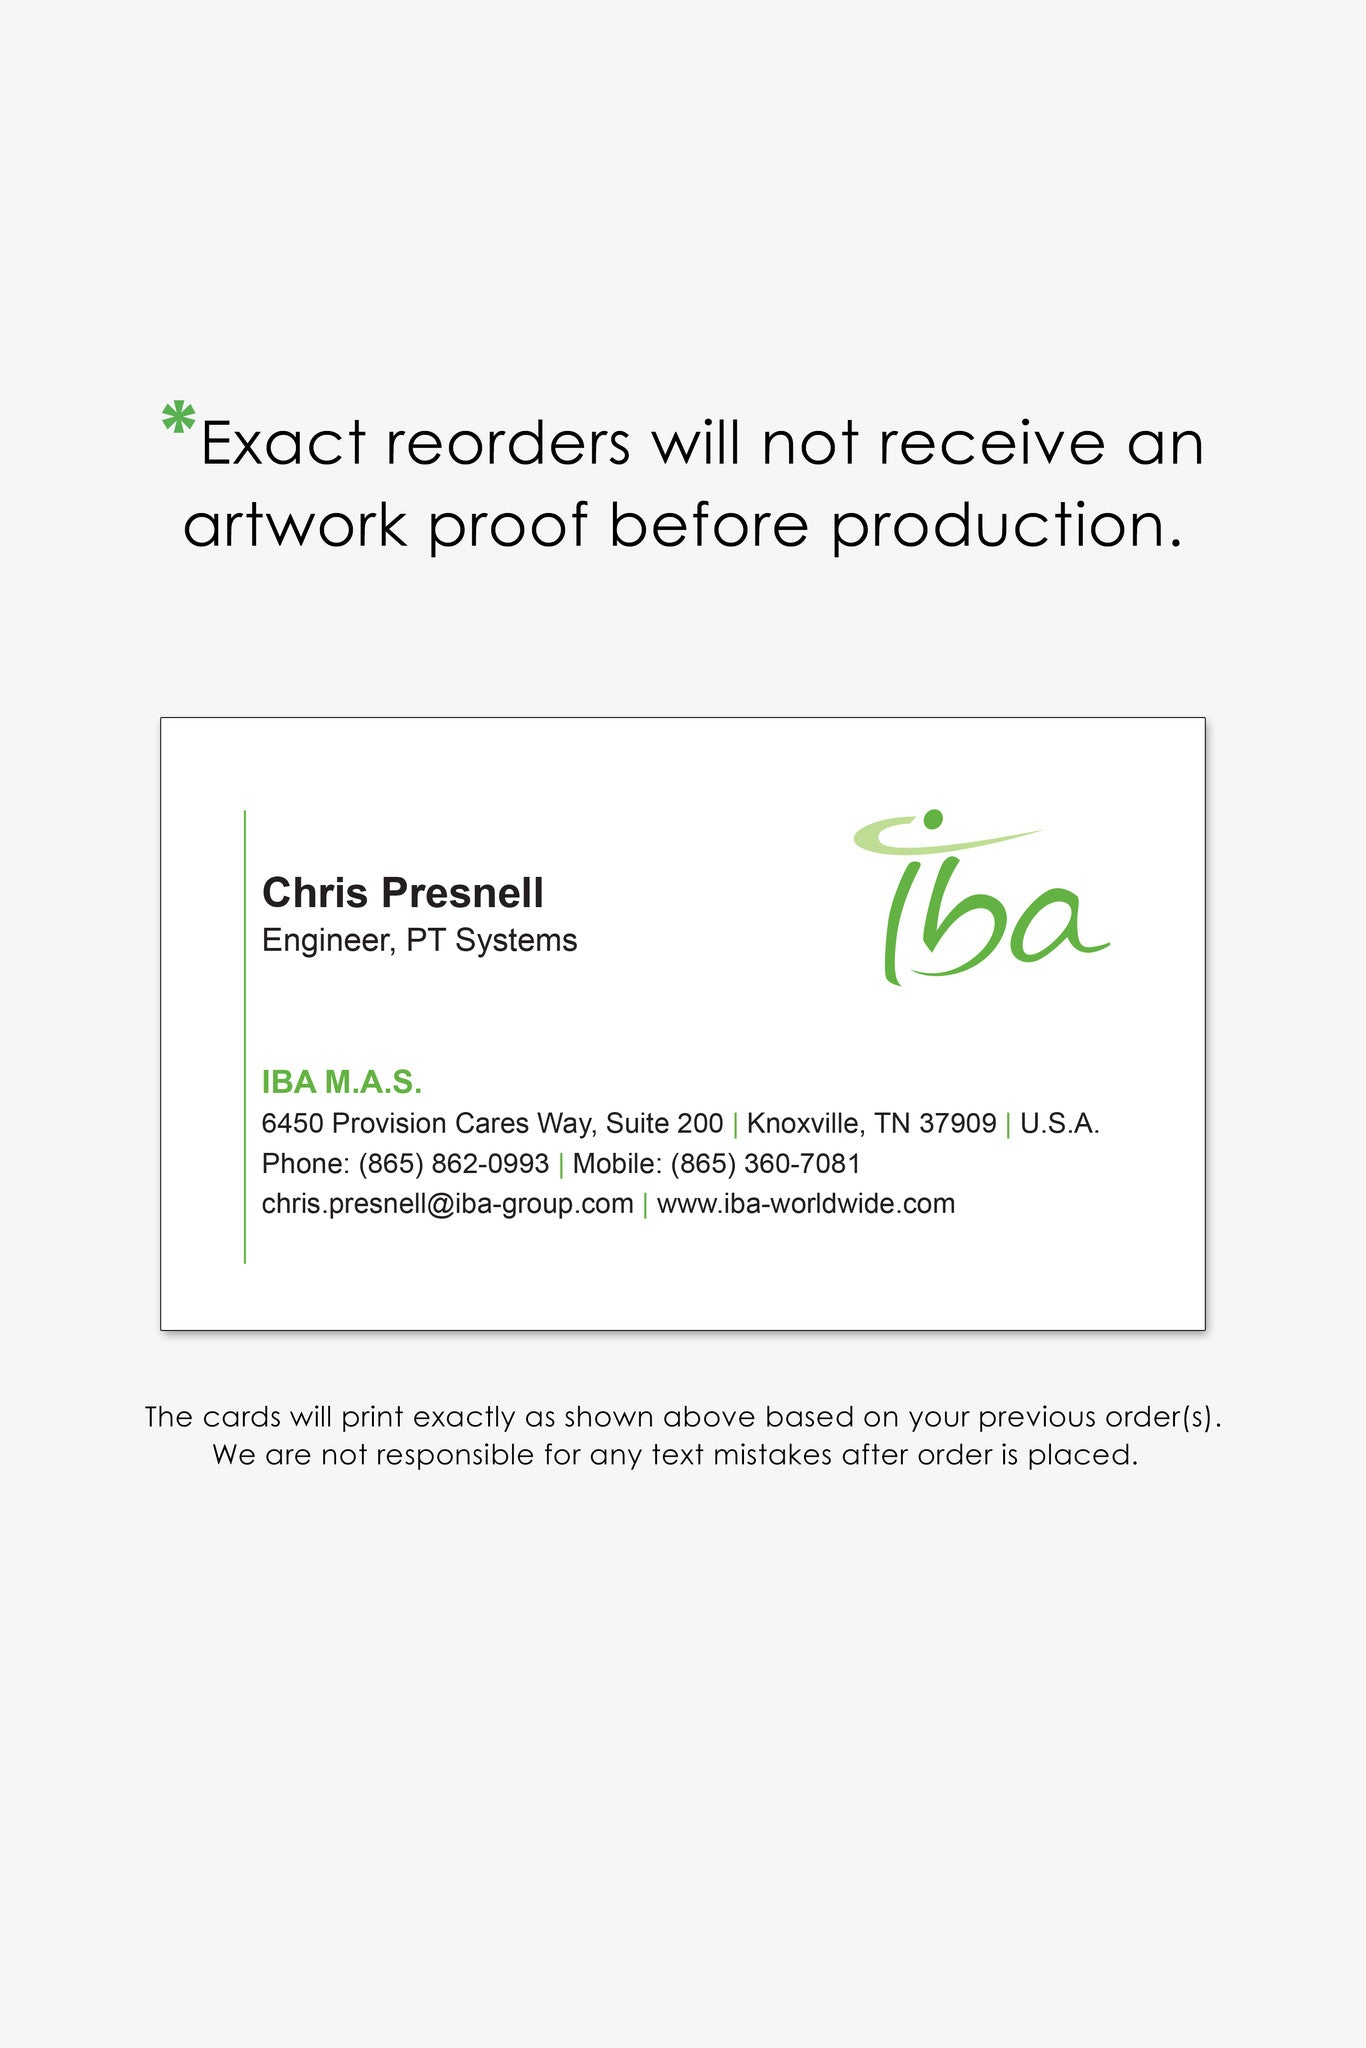 Iba knoxville business card reorder page endless prints knoxville business cards colourmoves Images